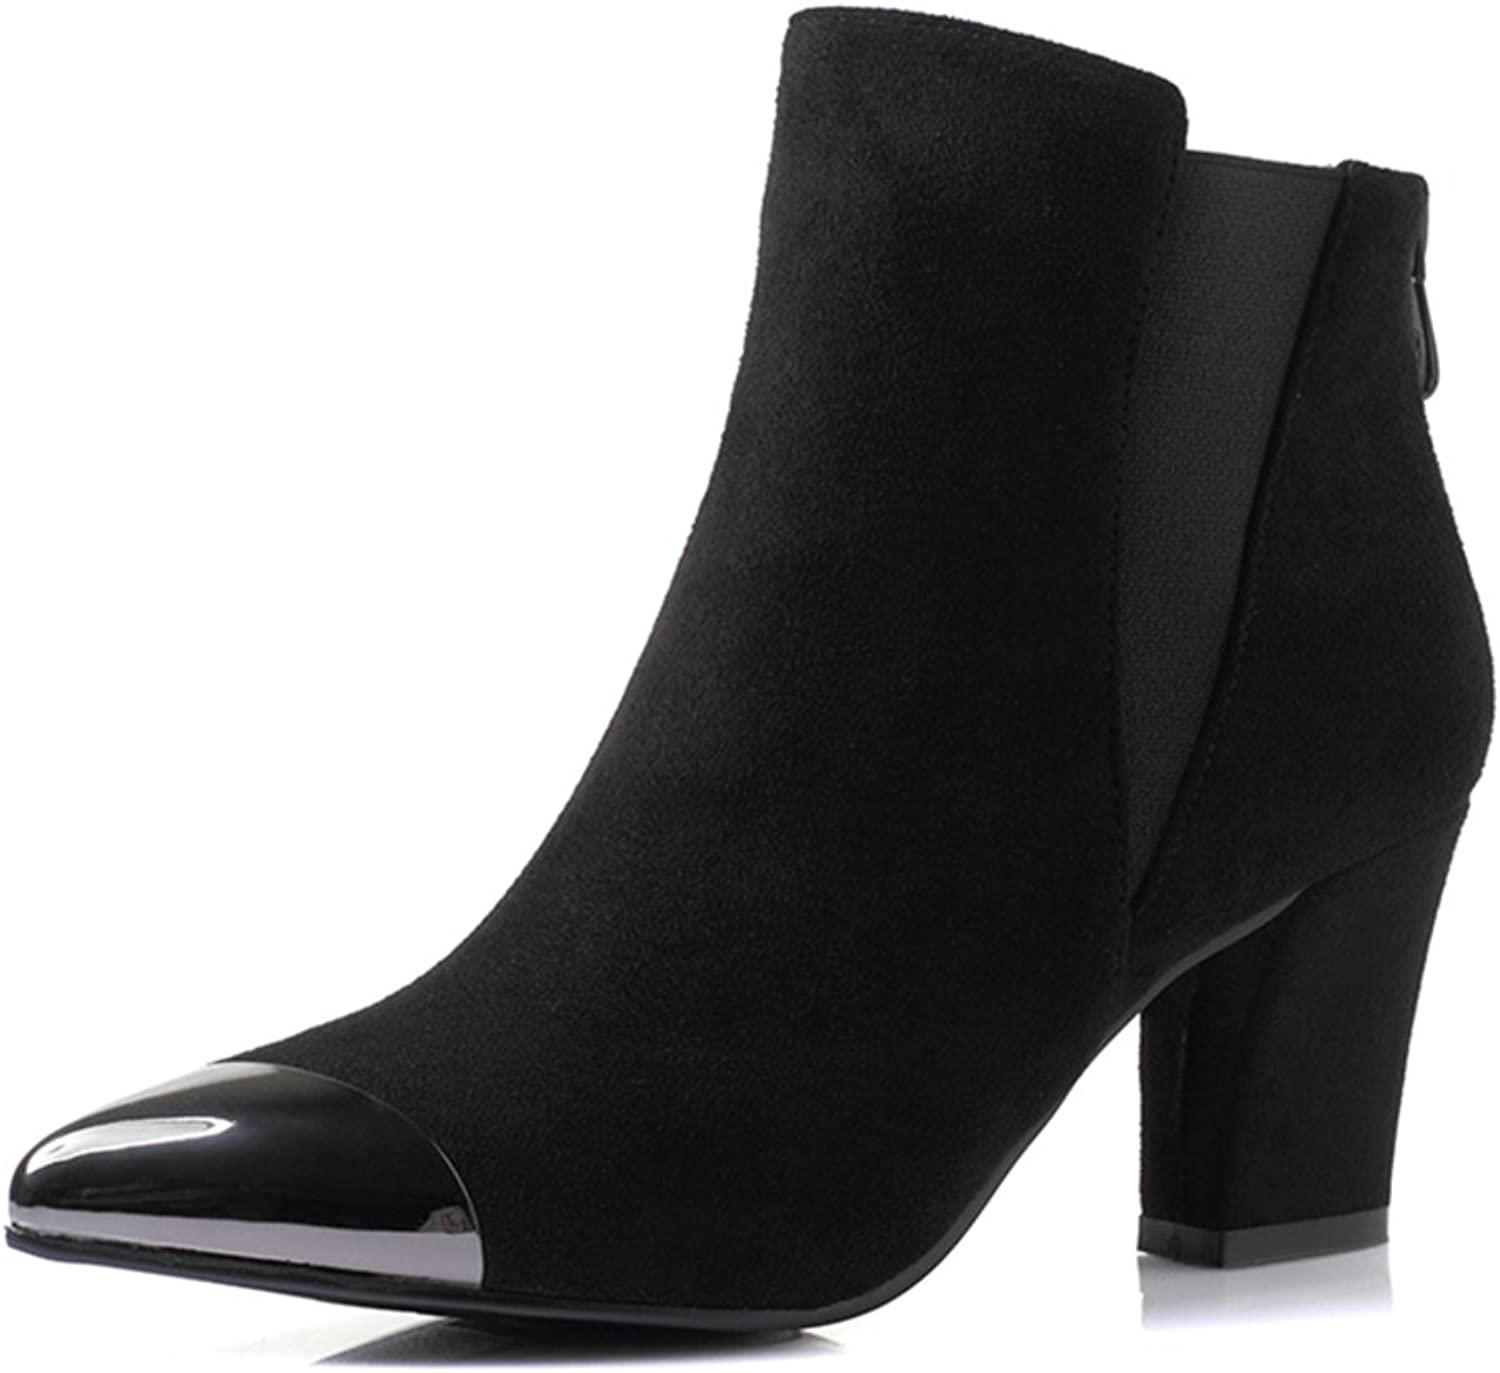 RHFDVGDS autumn Chelsea boots Coarse with Martin short tube with high heels boots fashionable pointy ankle boots